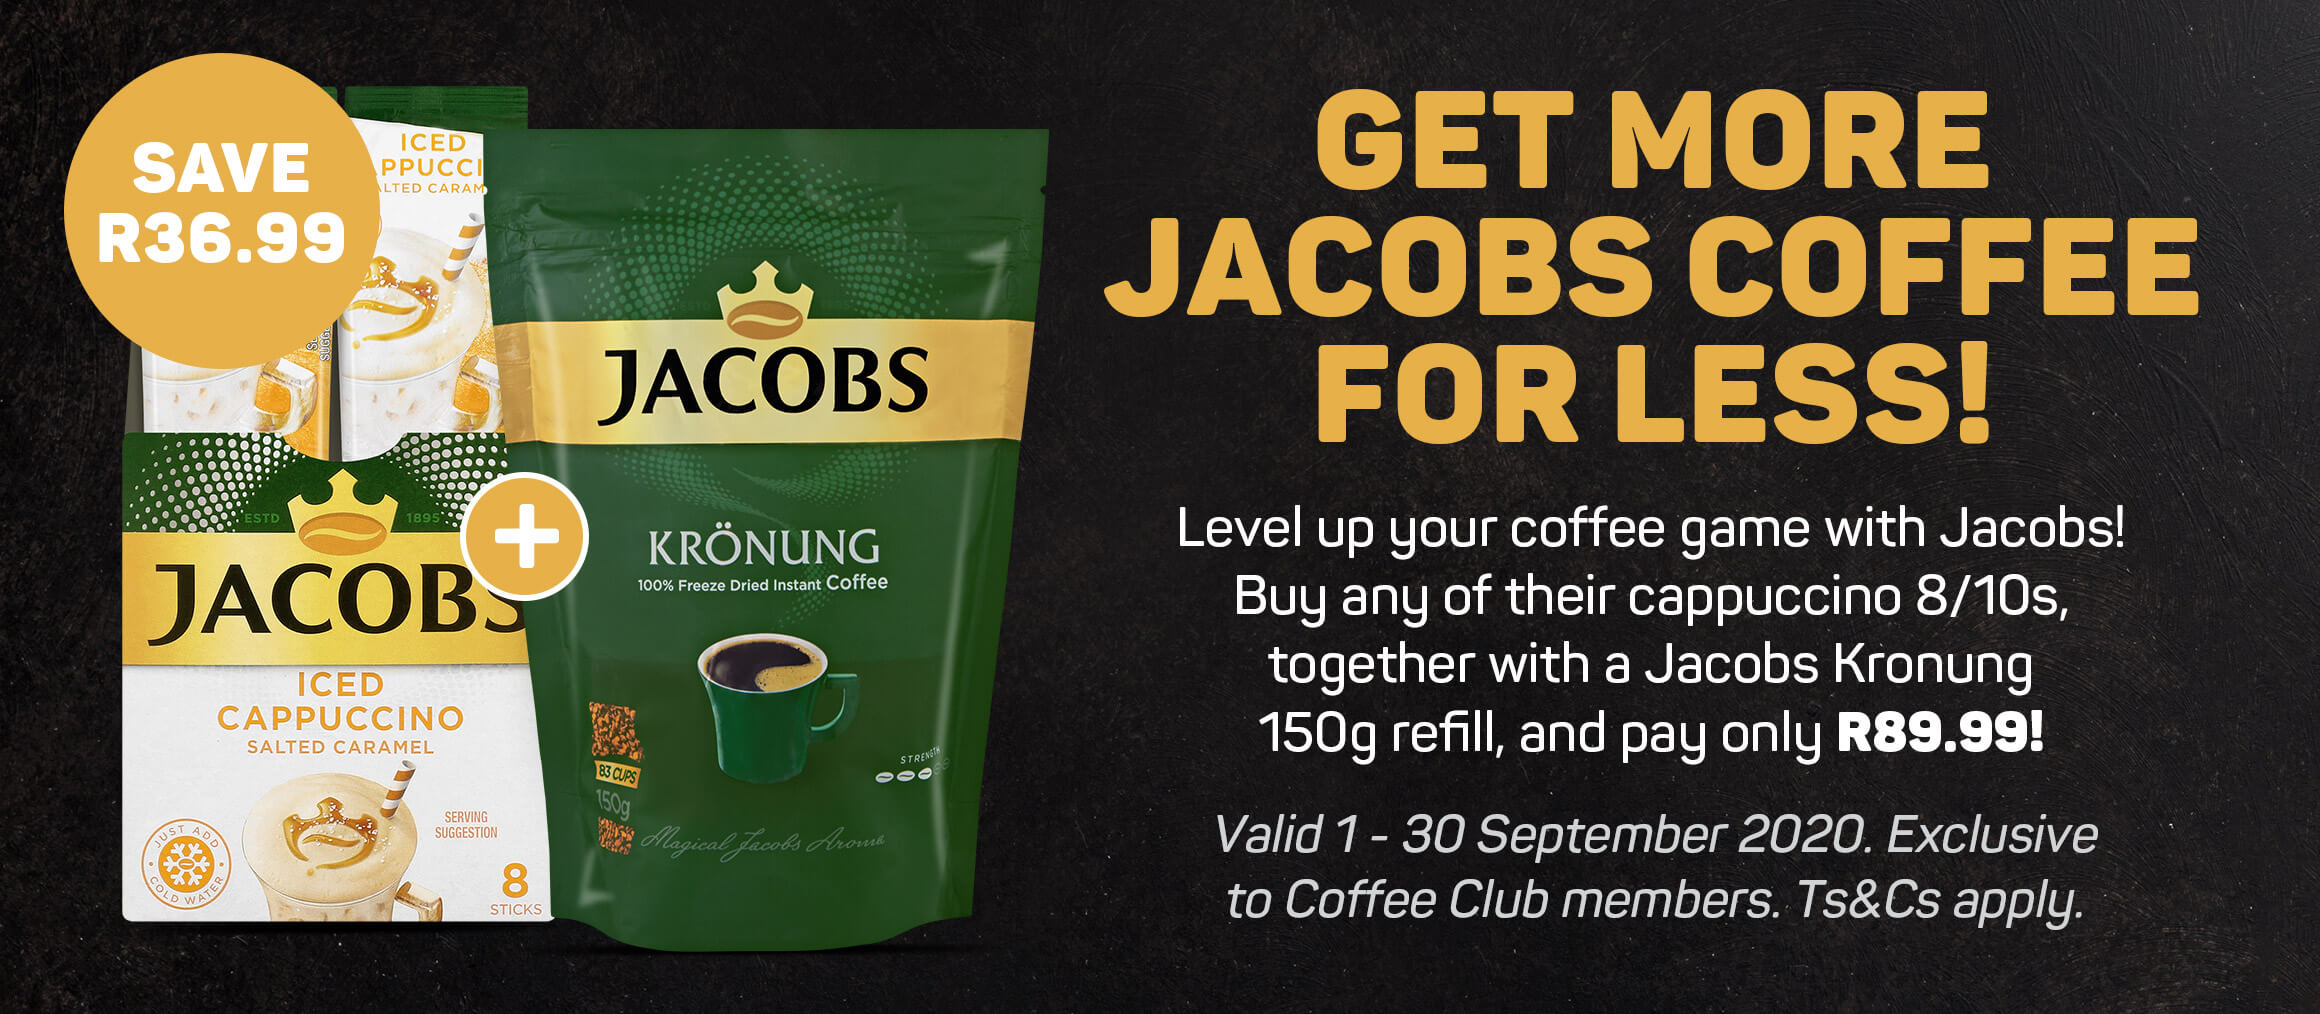 Get more Jacobs coffee for less!